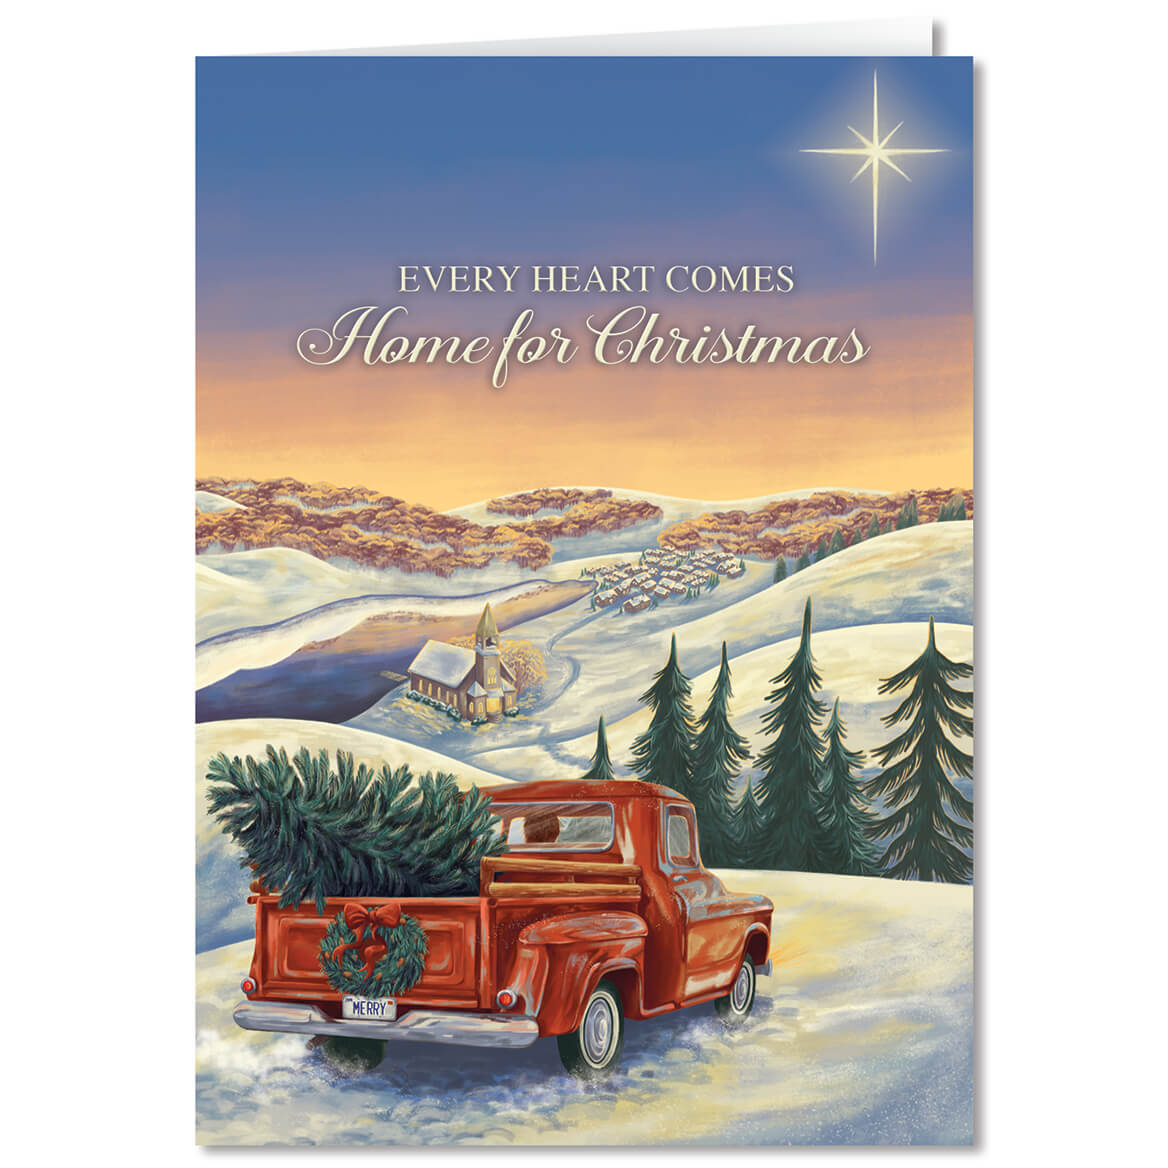 Personalized Hearts Come Home Chistmas Card Set of 20 - Miles Kimball